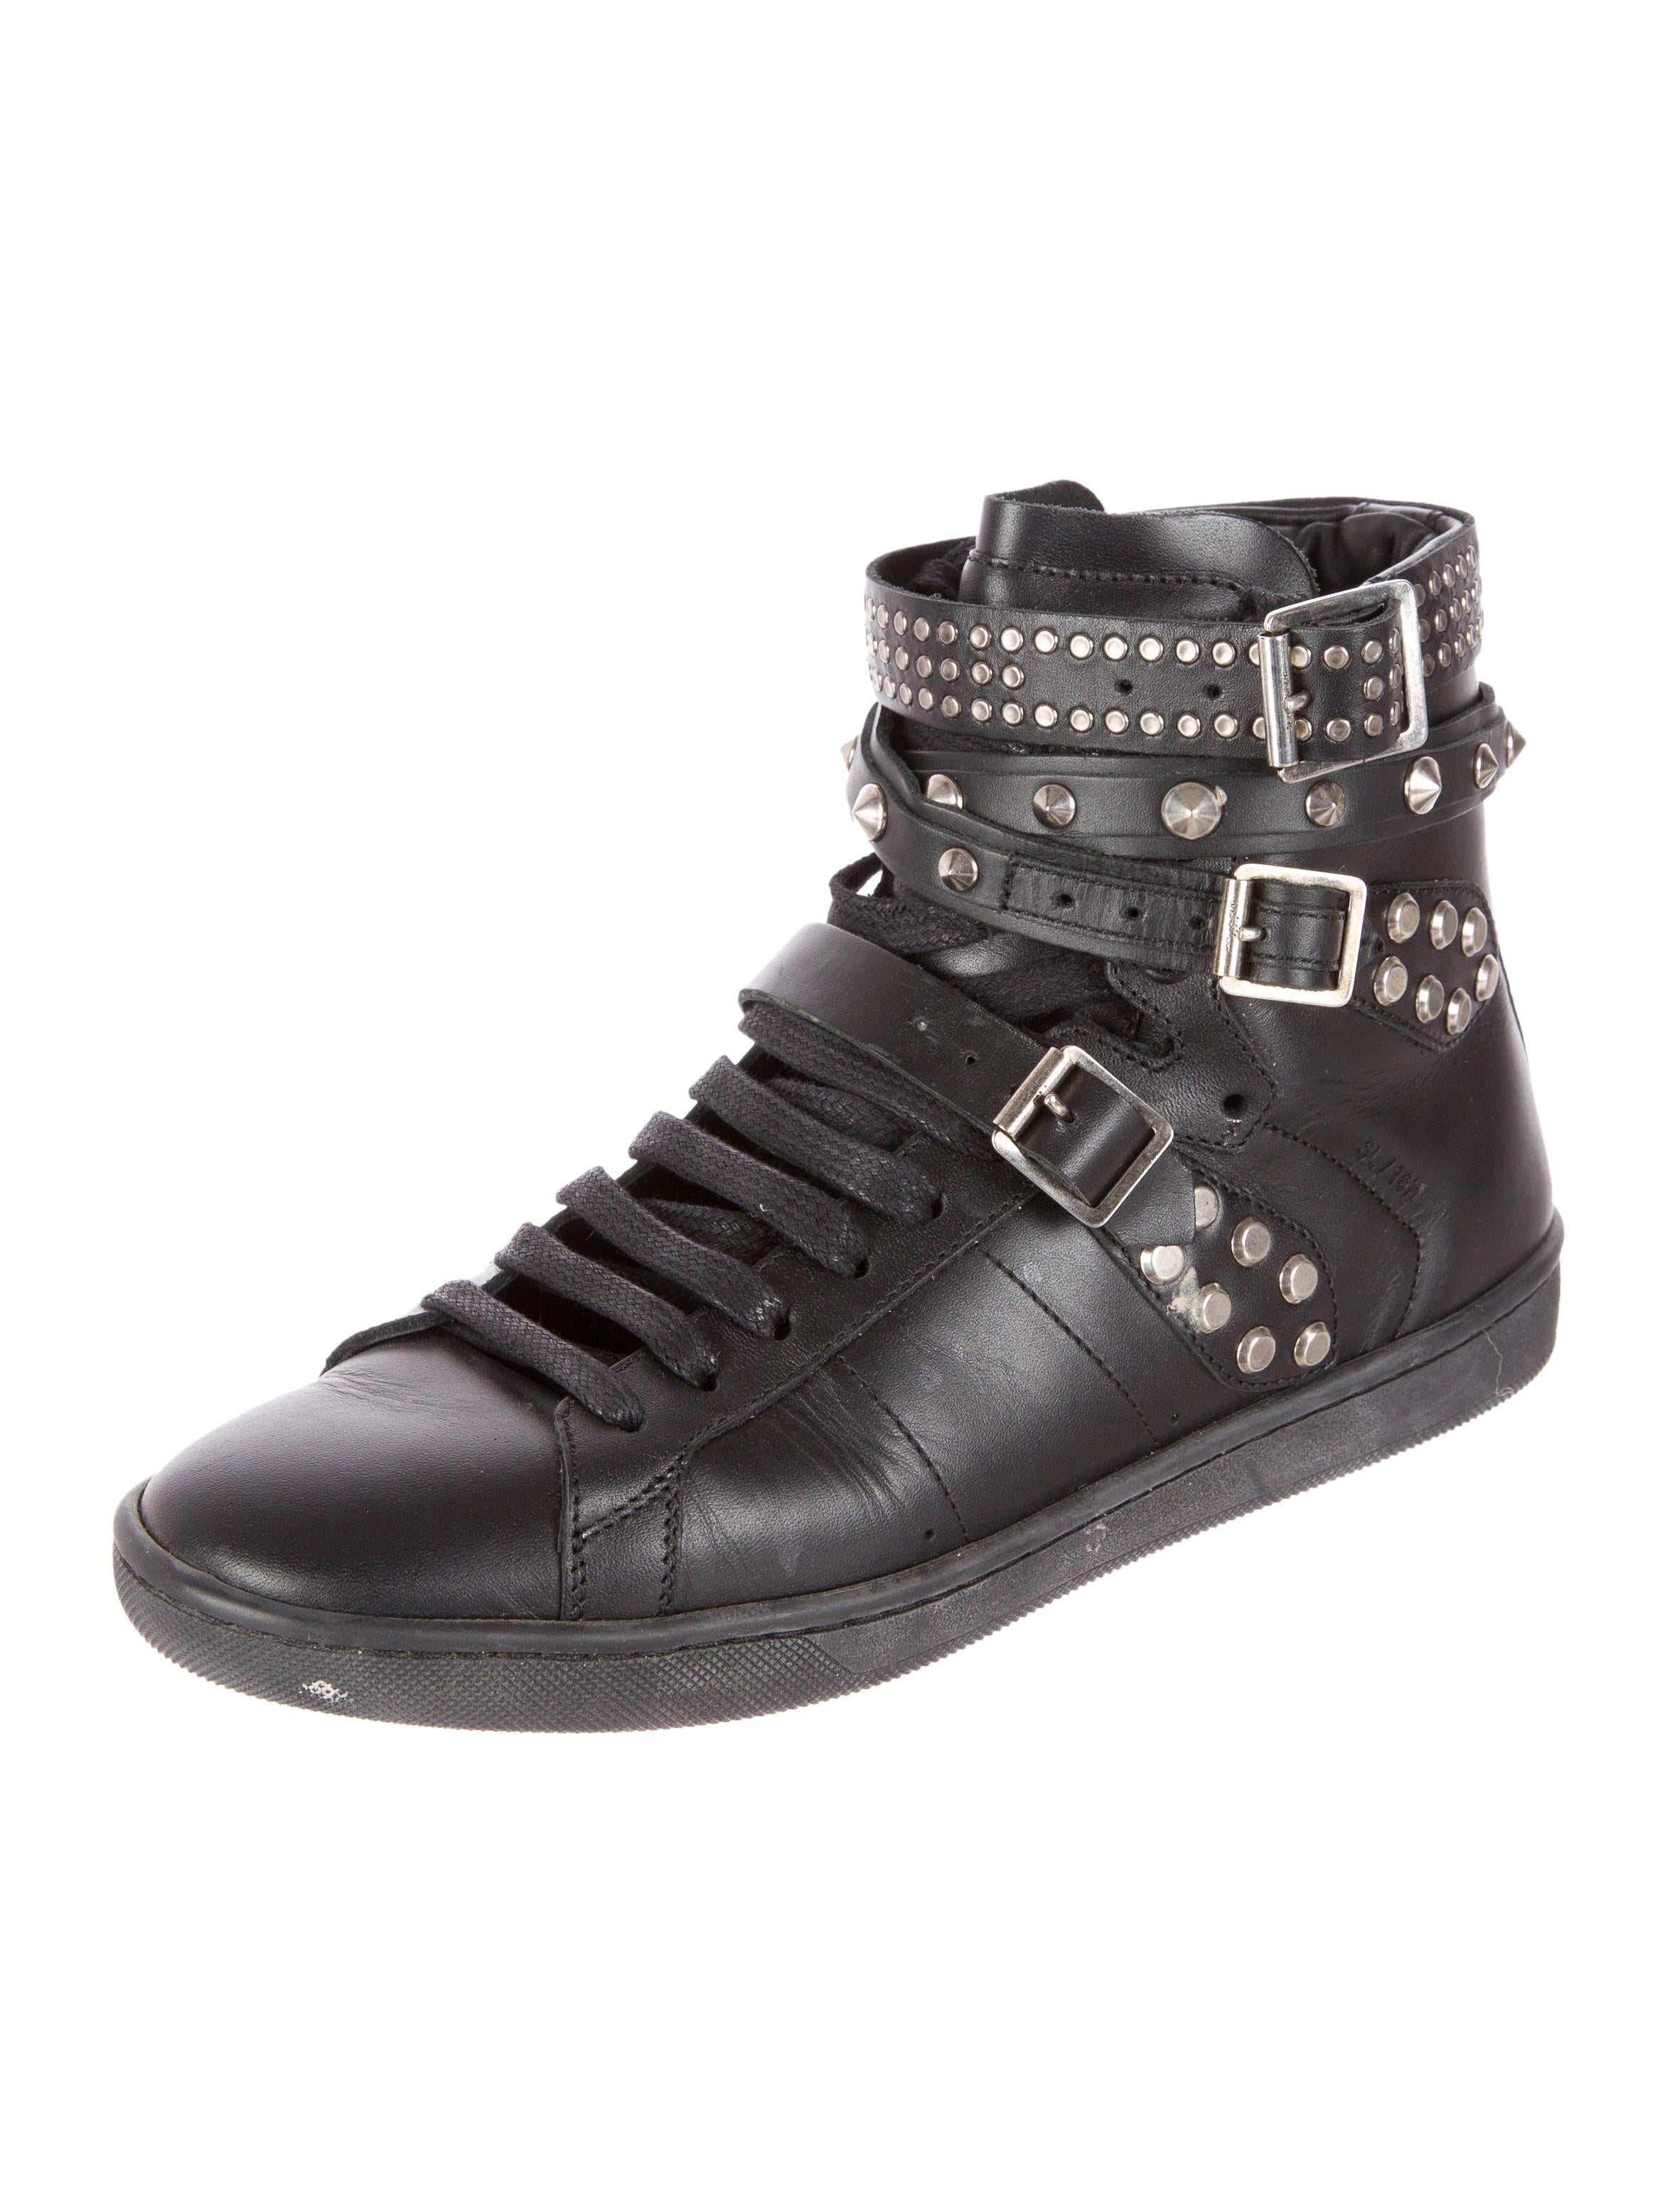 saint laurent studded triple buckle high top sneakers shoes snt23586 the realreal. Black Bedroom Furniture Sets. Home Design Ideas